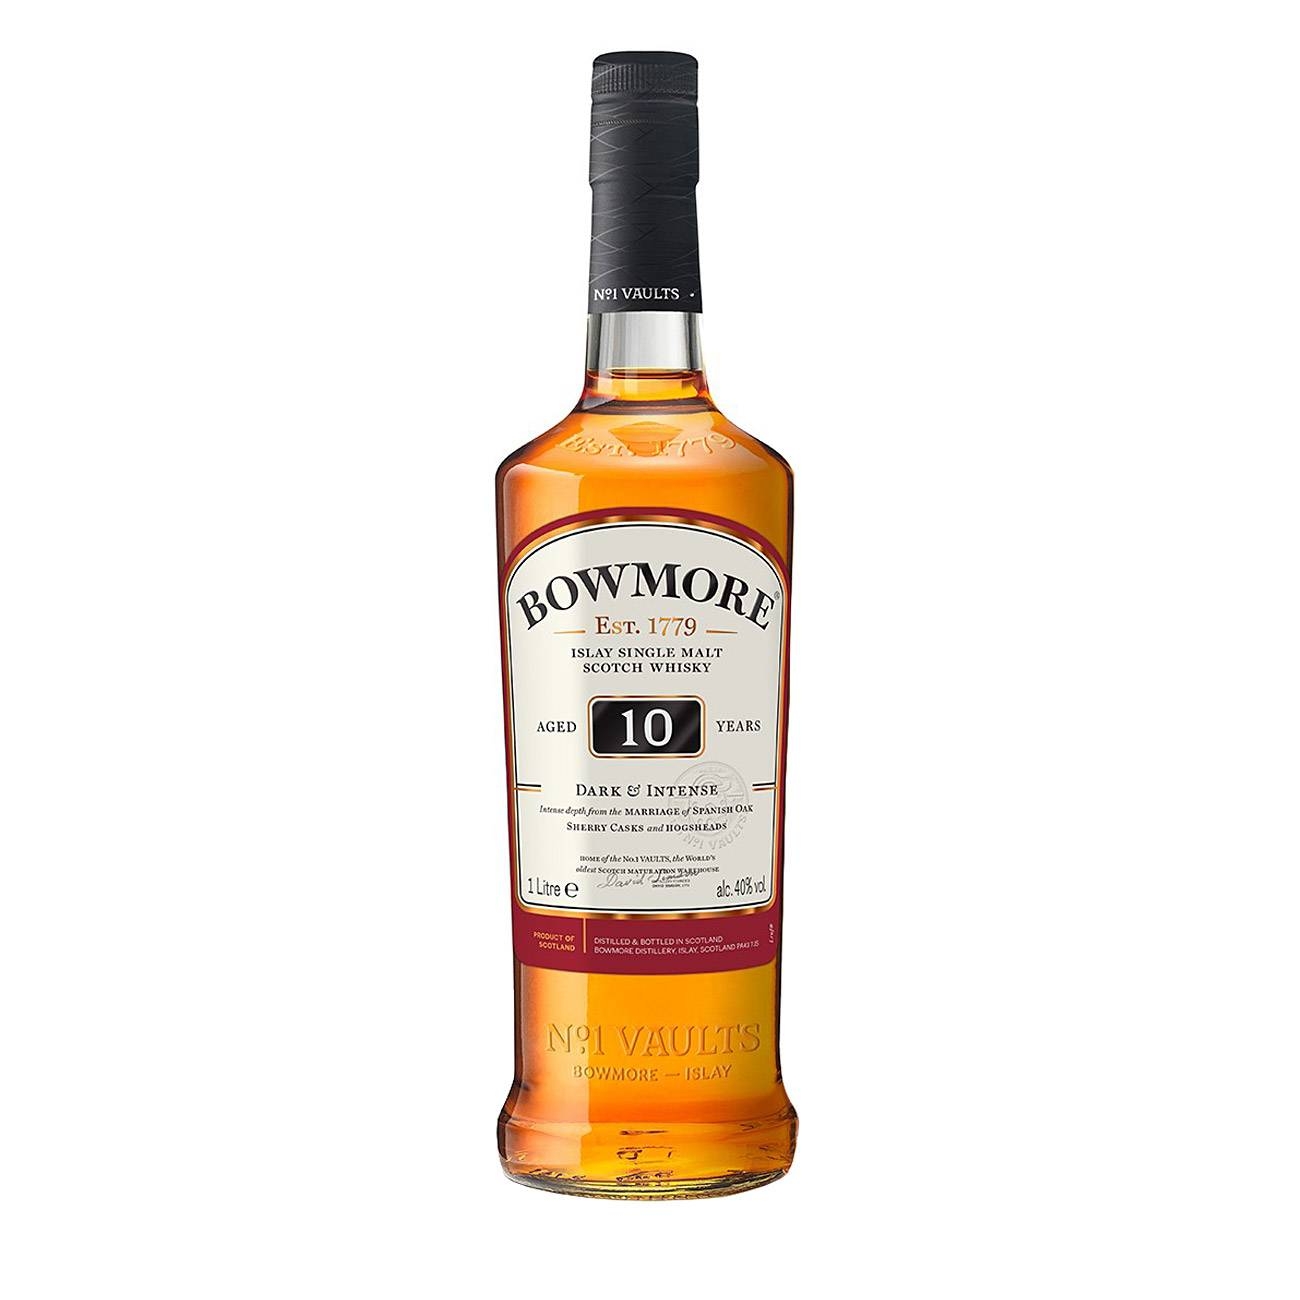 Whisky scotian, DARK & INTENSE 10Y 1000 Ml, Bowmore